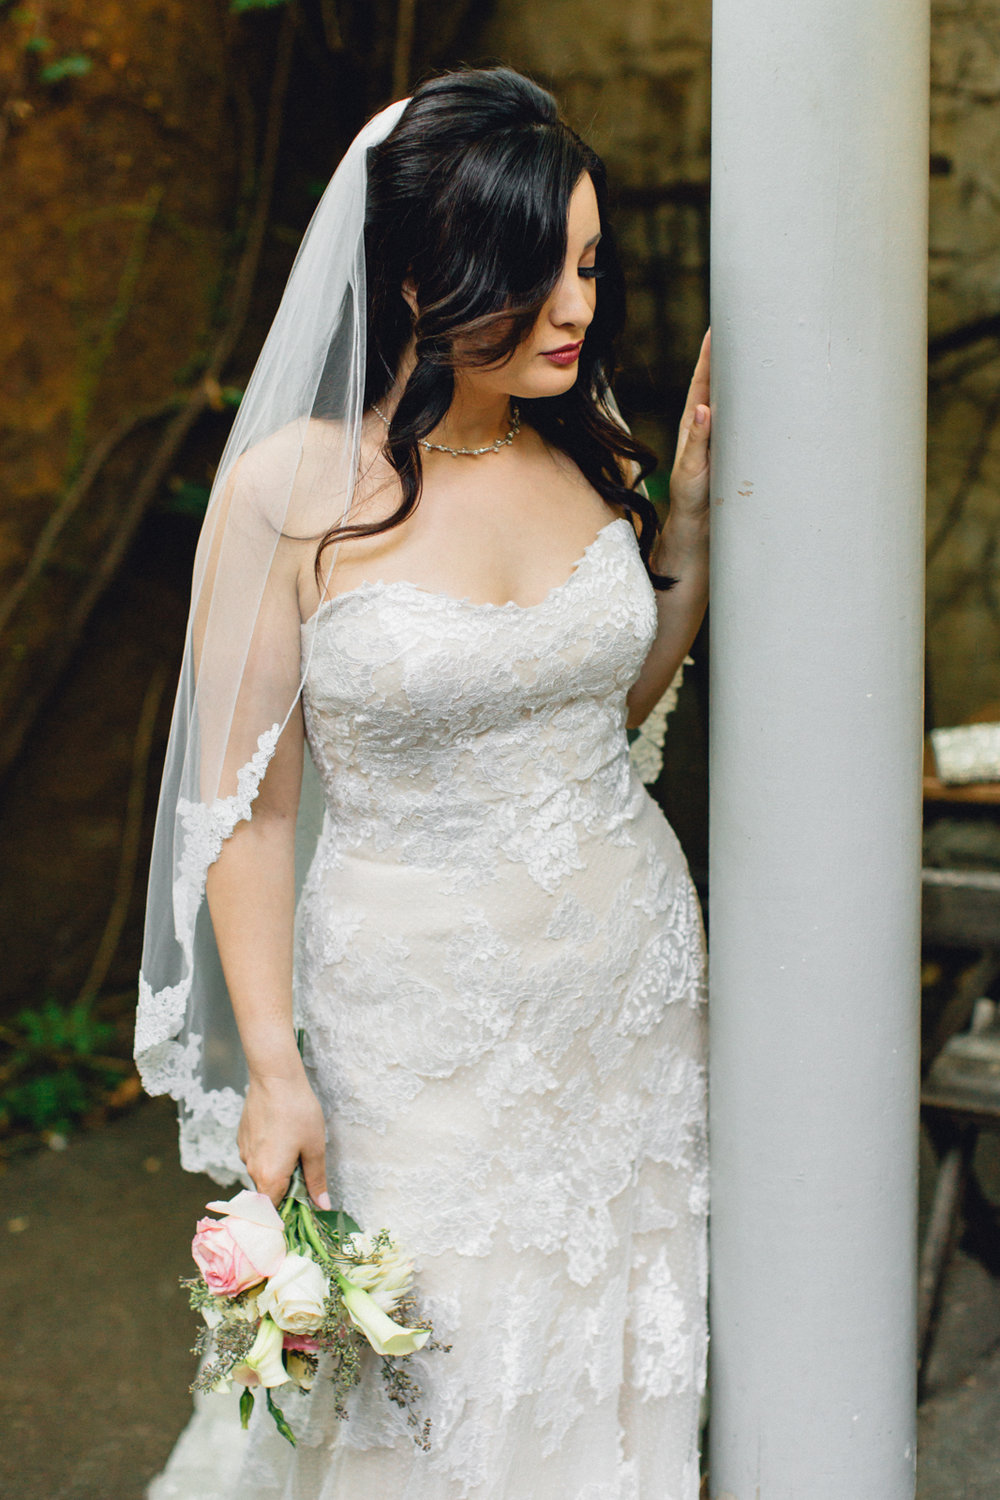 NYC Wedding Photography Lofts at Prince Brooklyn NYC Photographer Boris Zaretsky _B2C0451.jpg